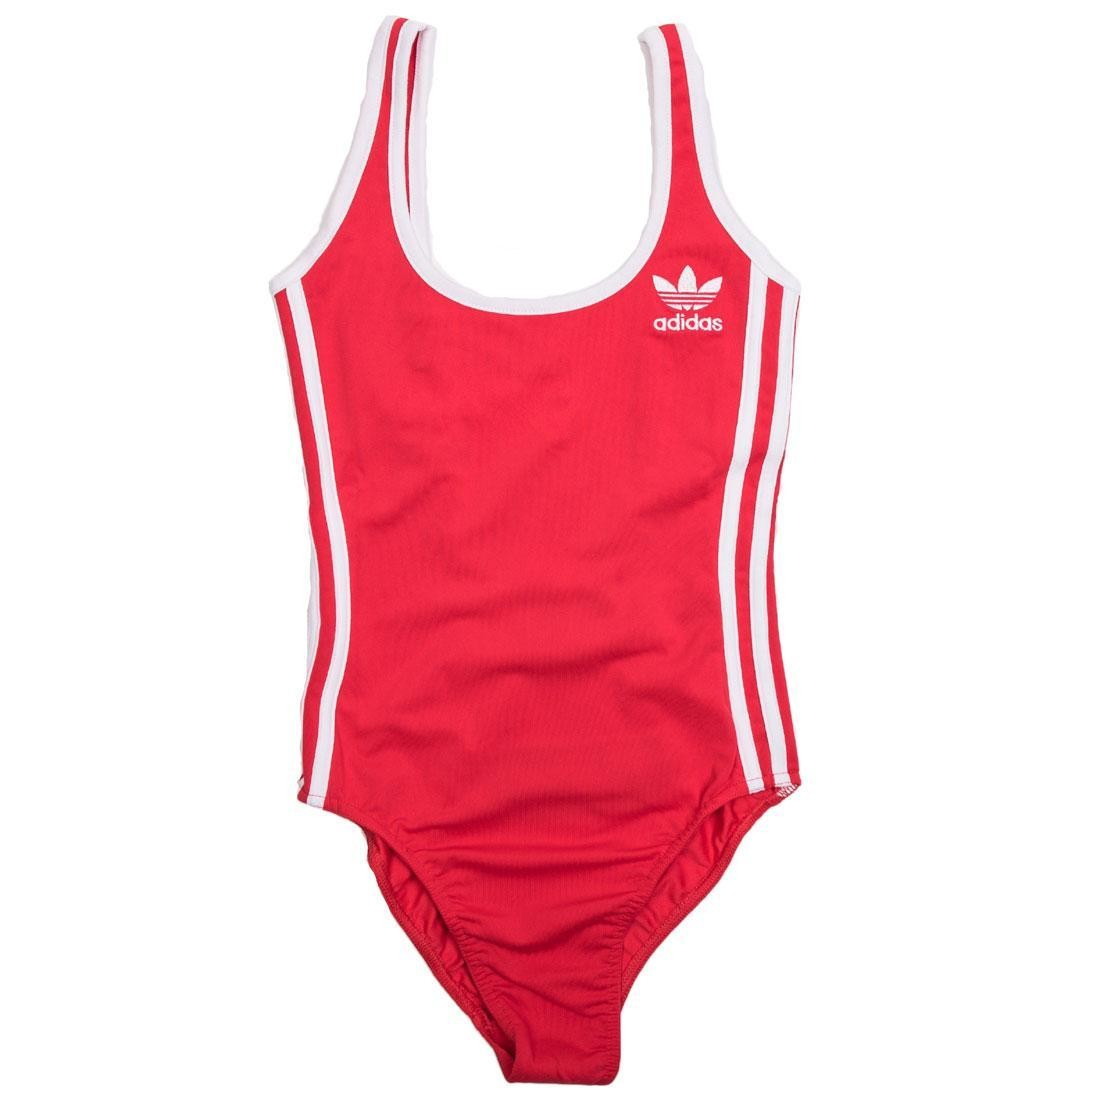 adidas bodysuit red